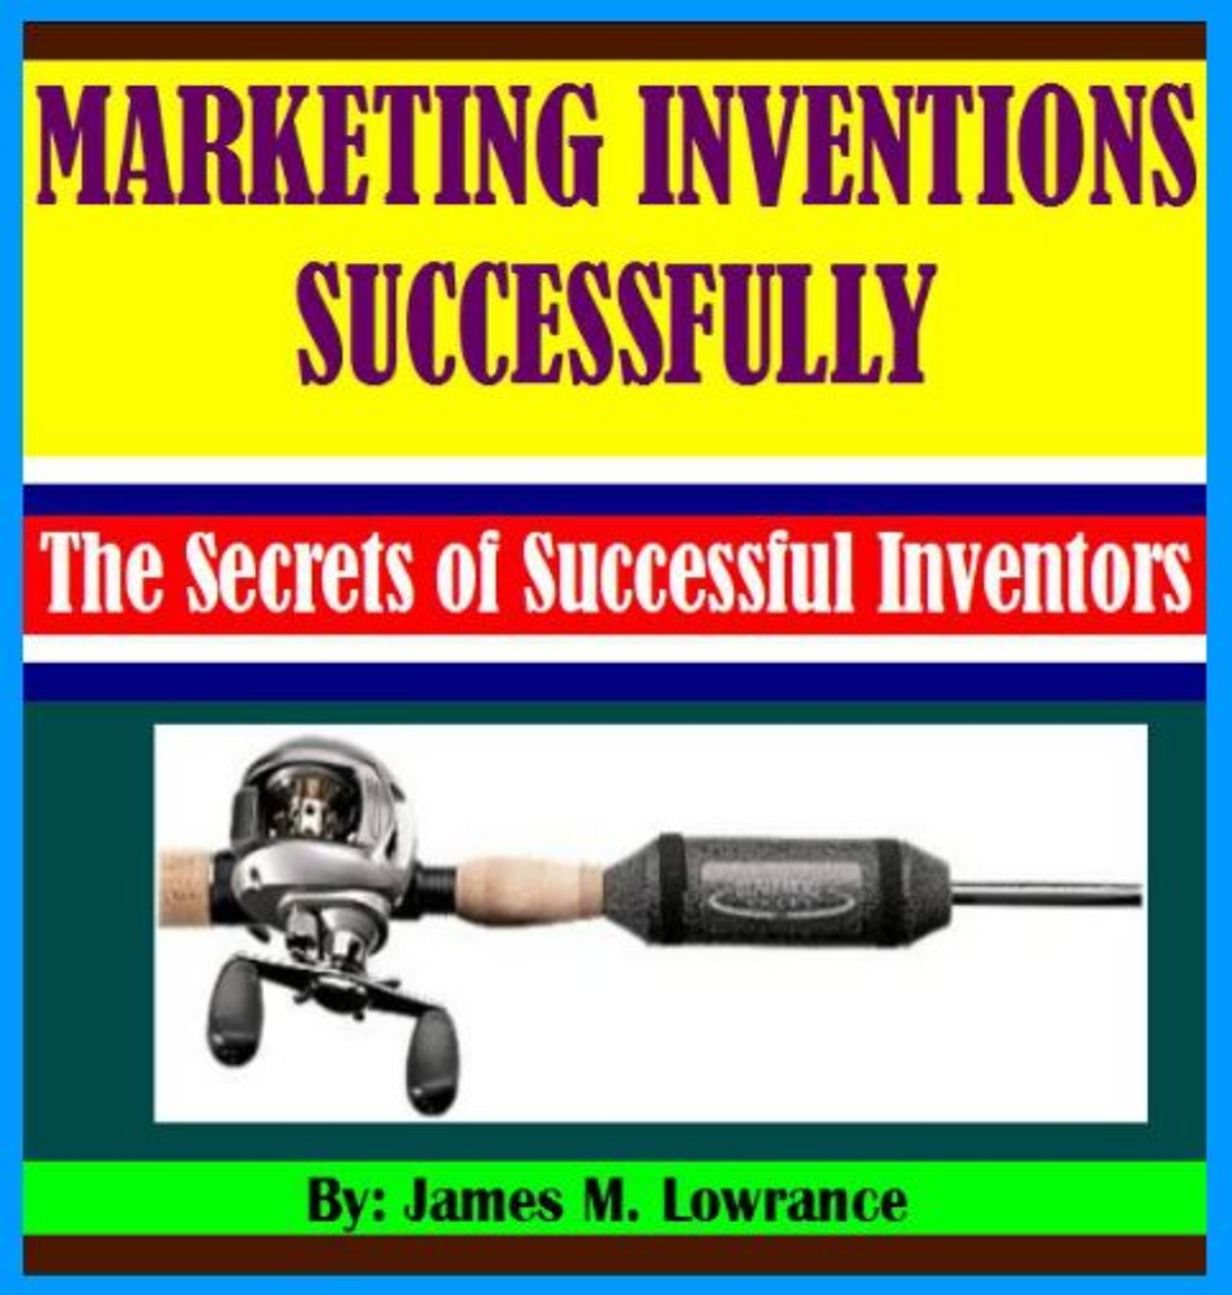 Marketing Your Inventions Successfully By: James Lowrance